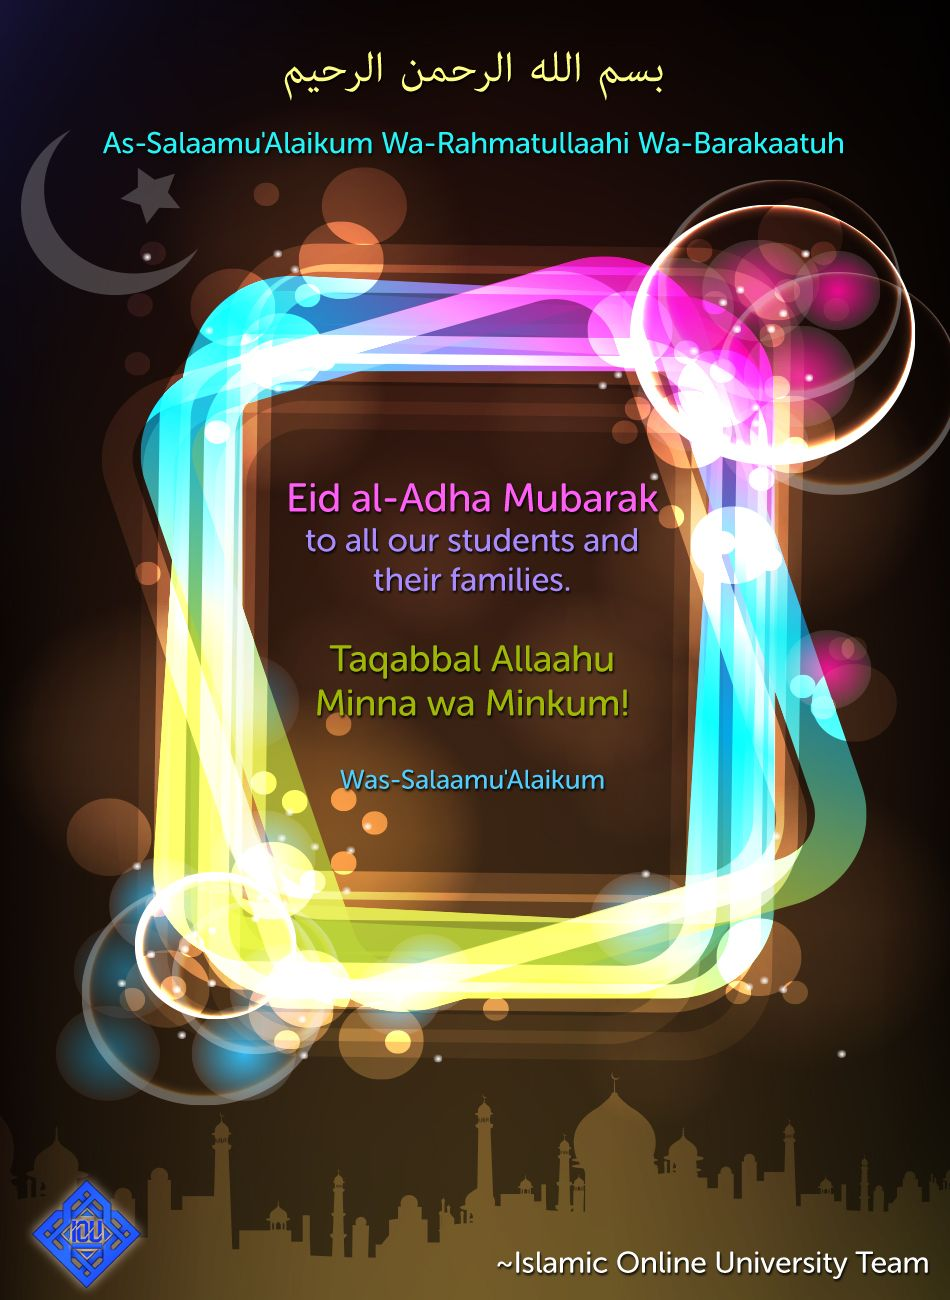 Eid wishes to our students eid pinterest eid ramadan eid wishes to our students ramadan greetingseid kristyandbryce Choice Image